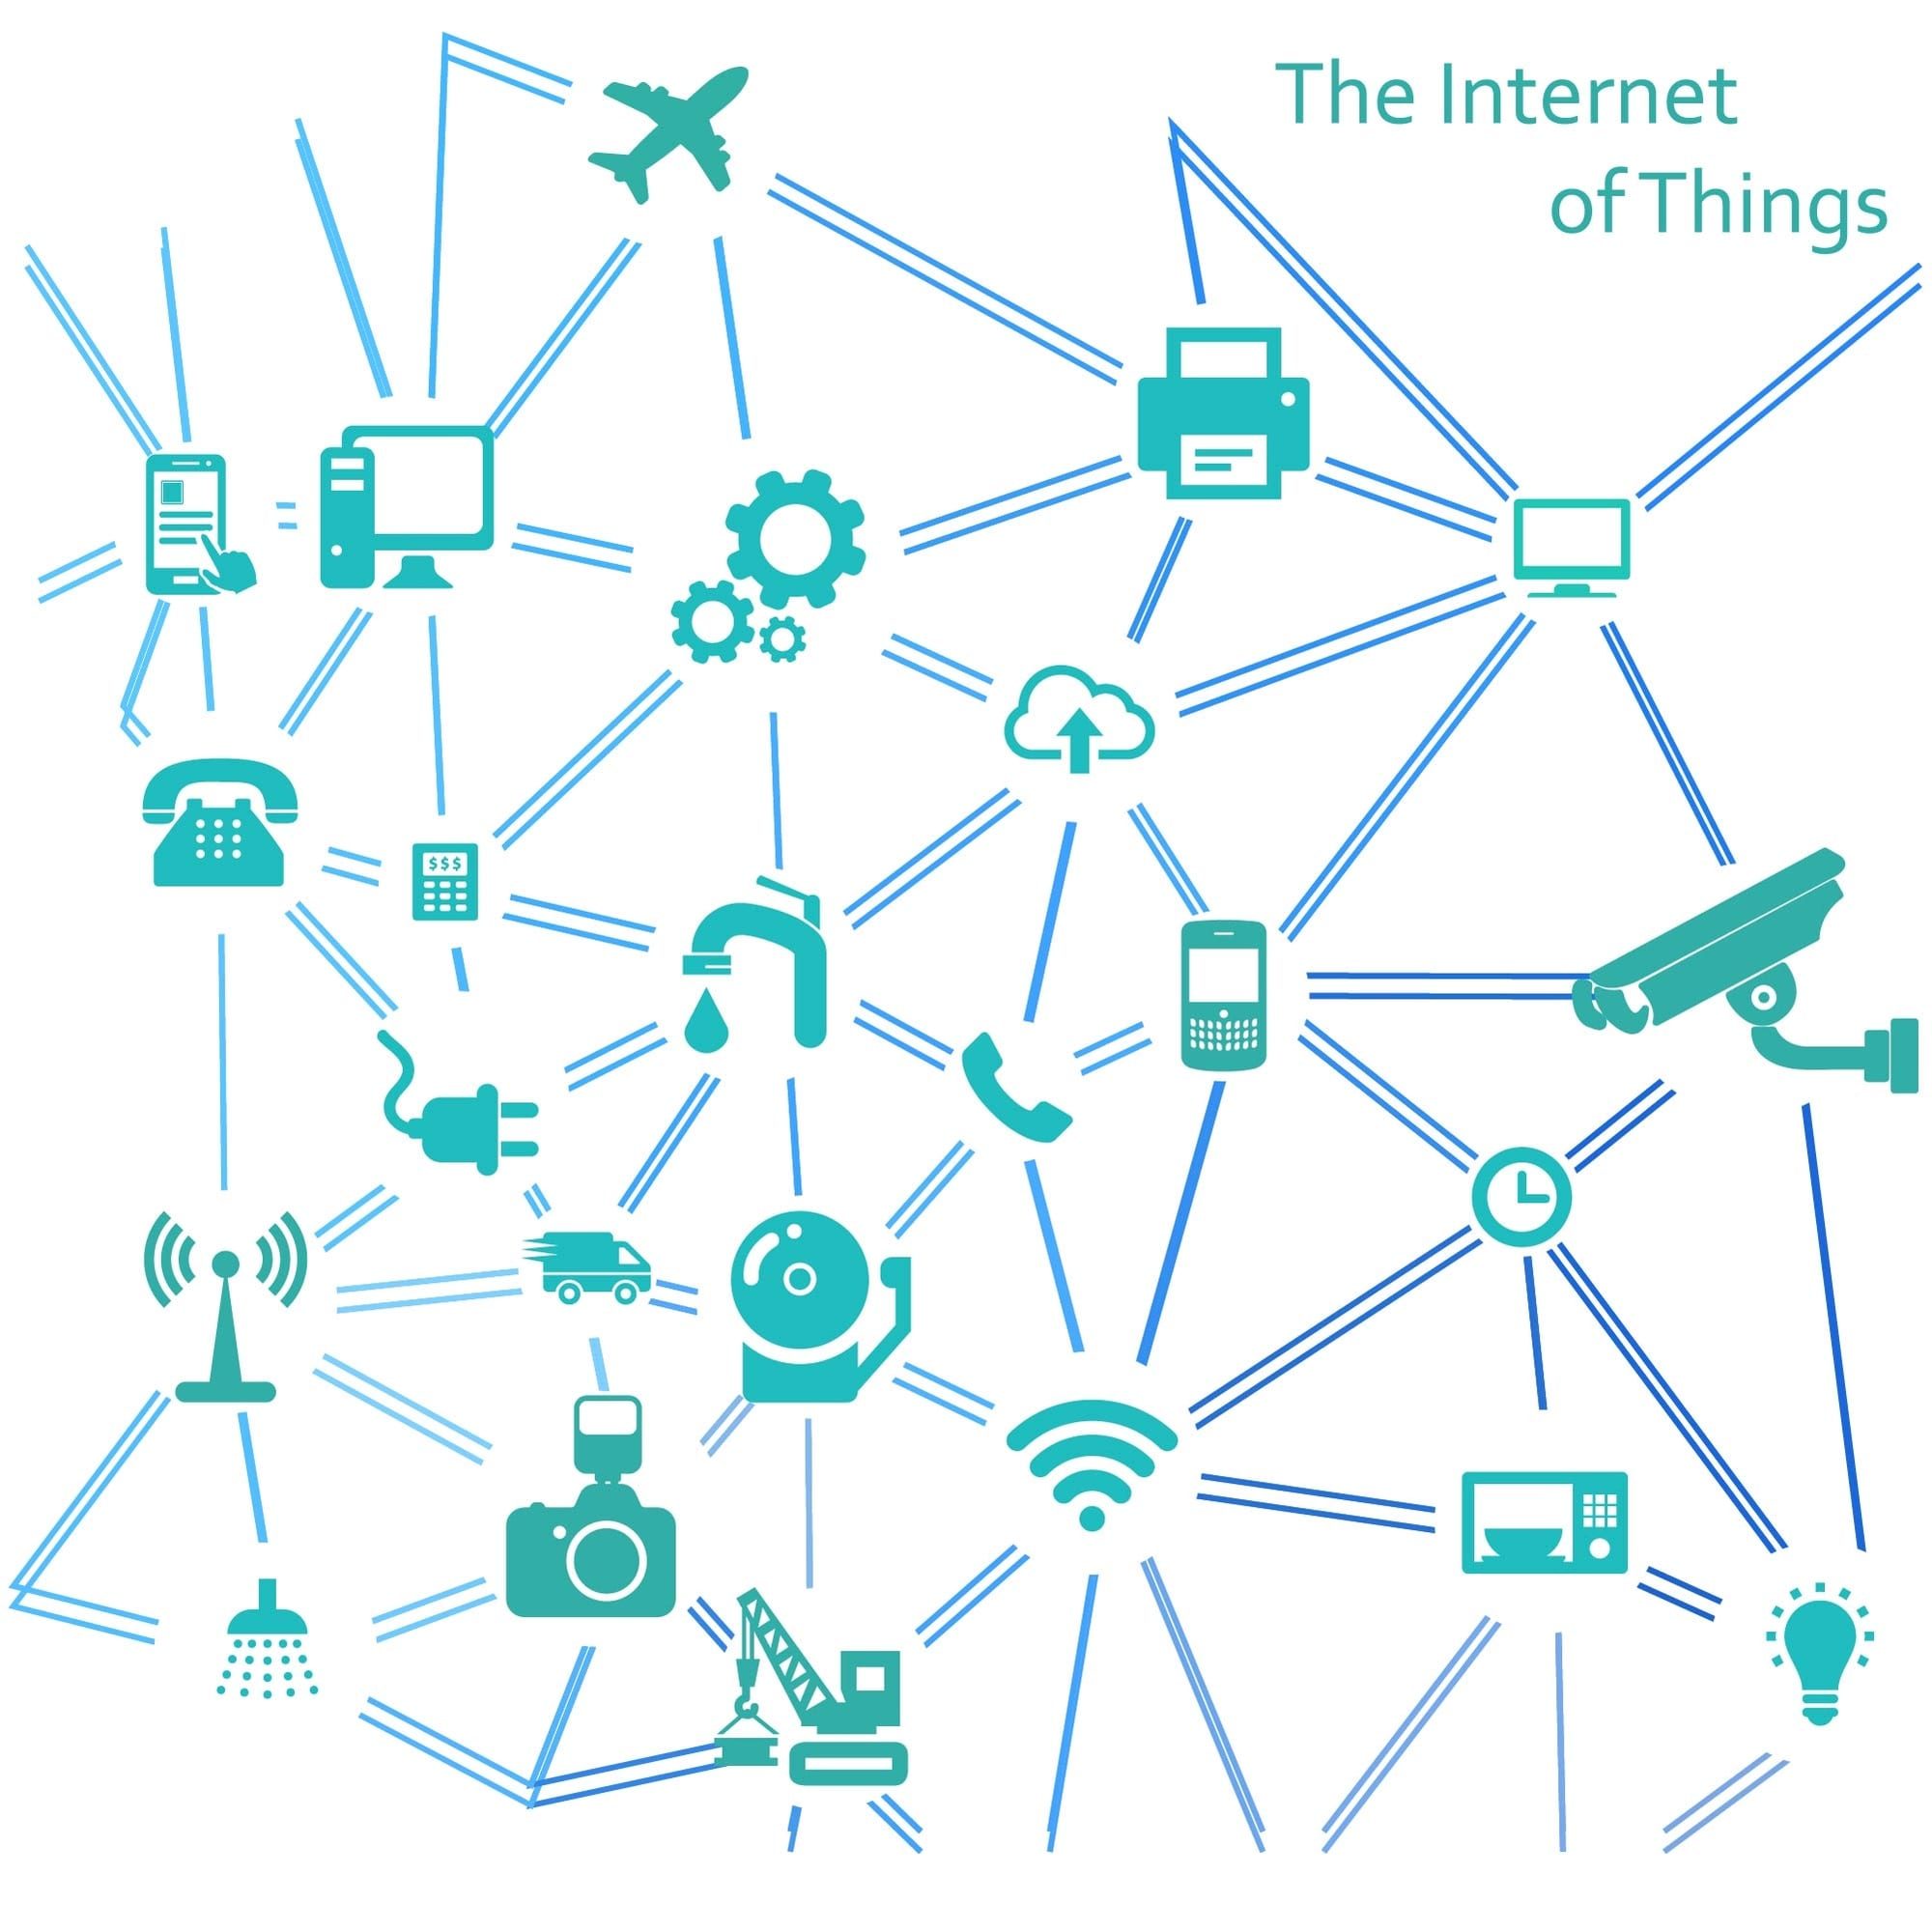 Securing The Internet Of Things featured image